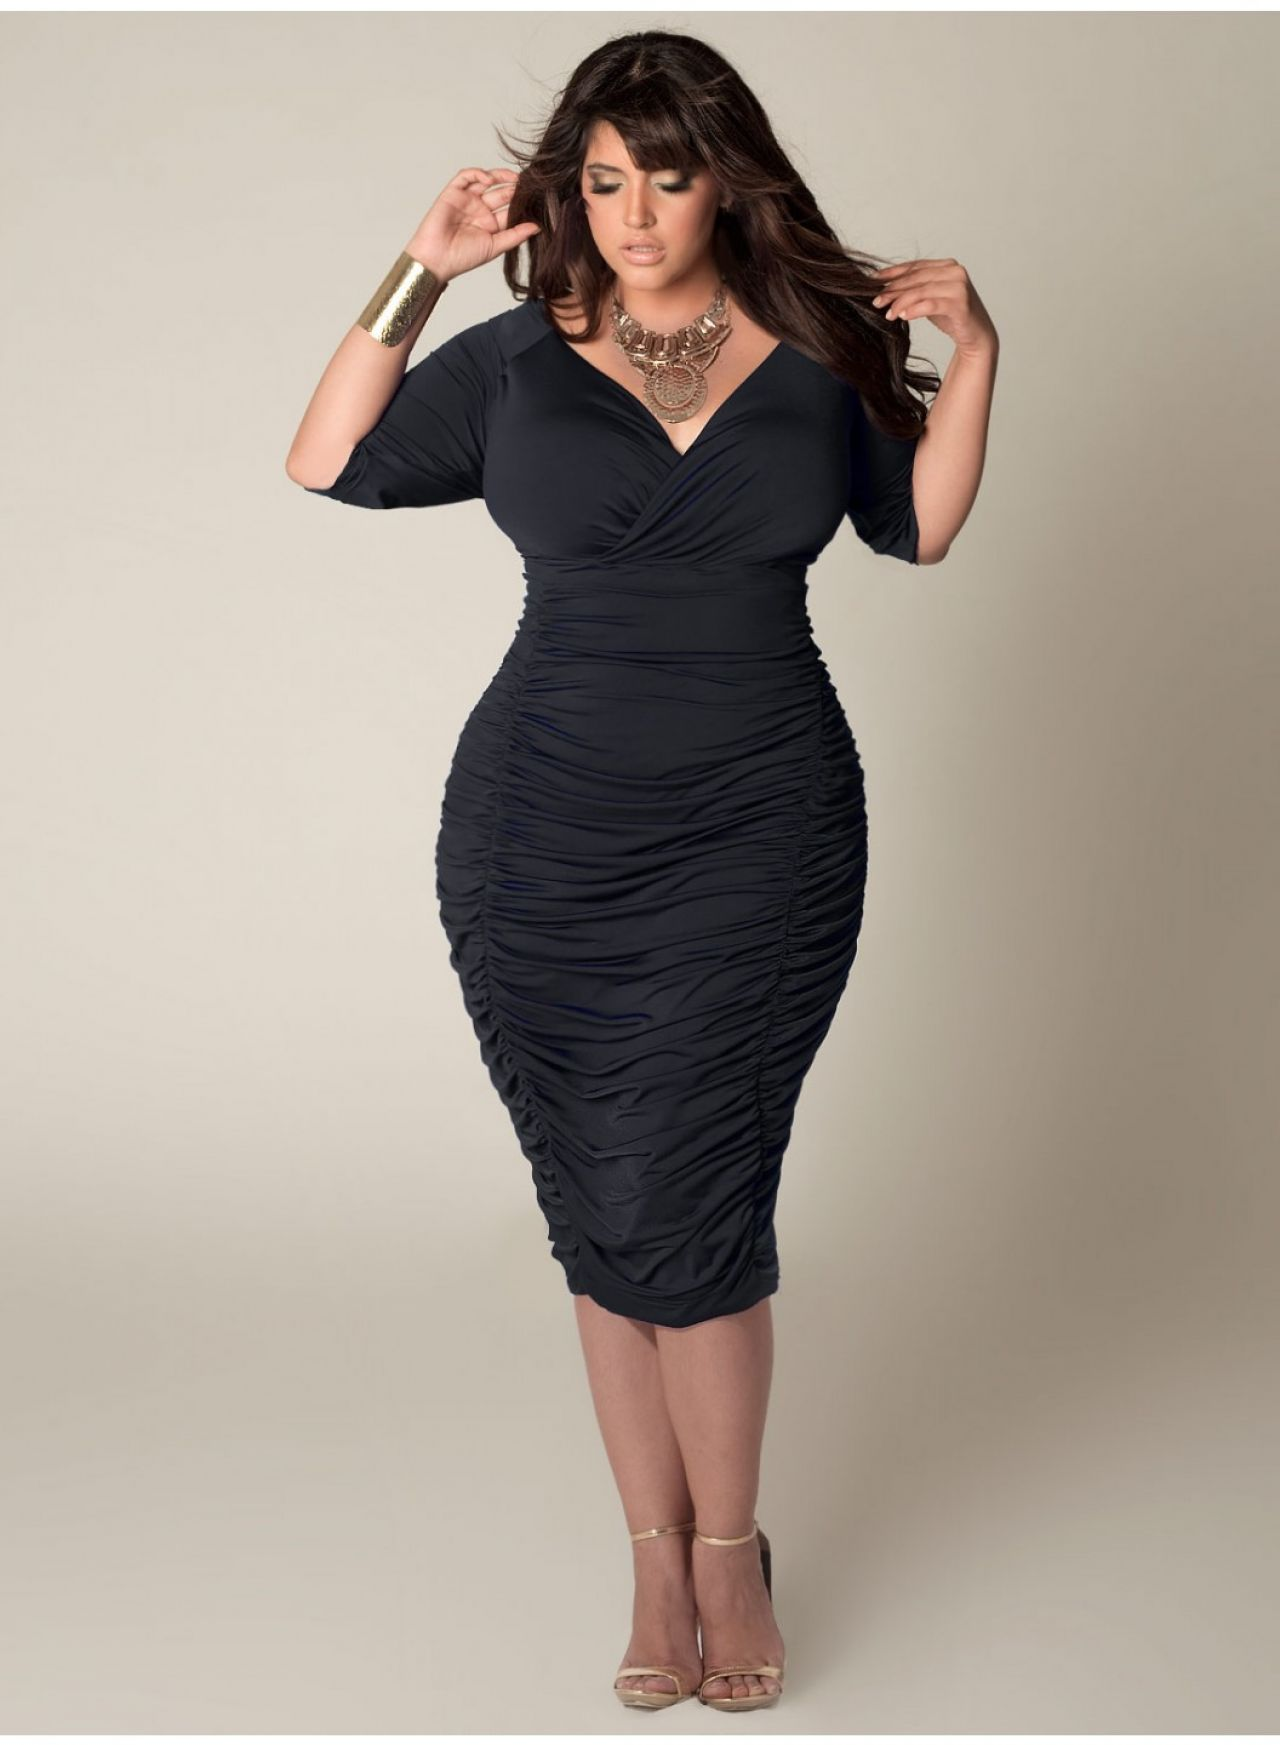 Best Guest Dress For A Fall Wedding Plus size wedding guest